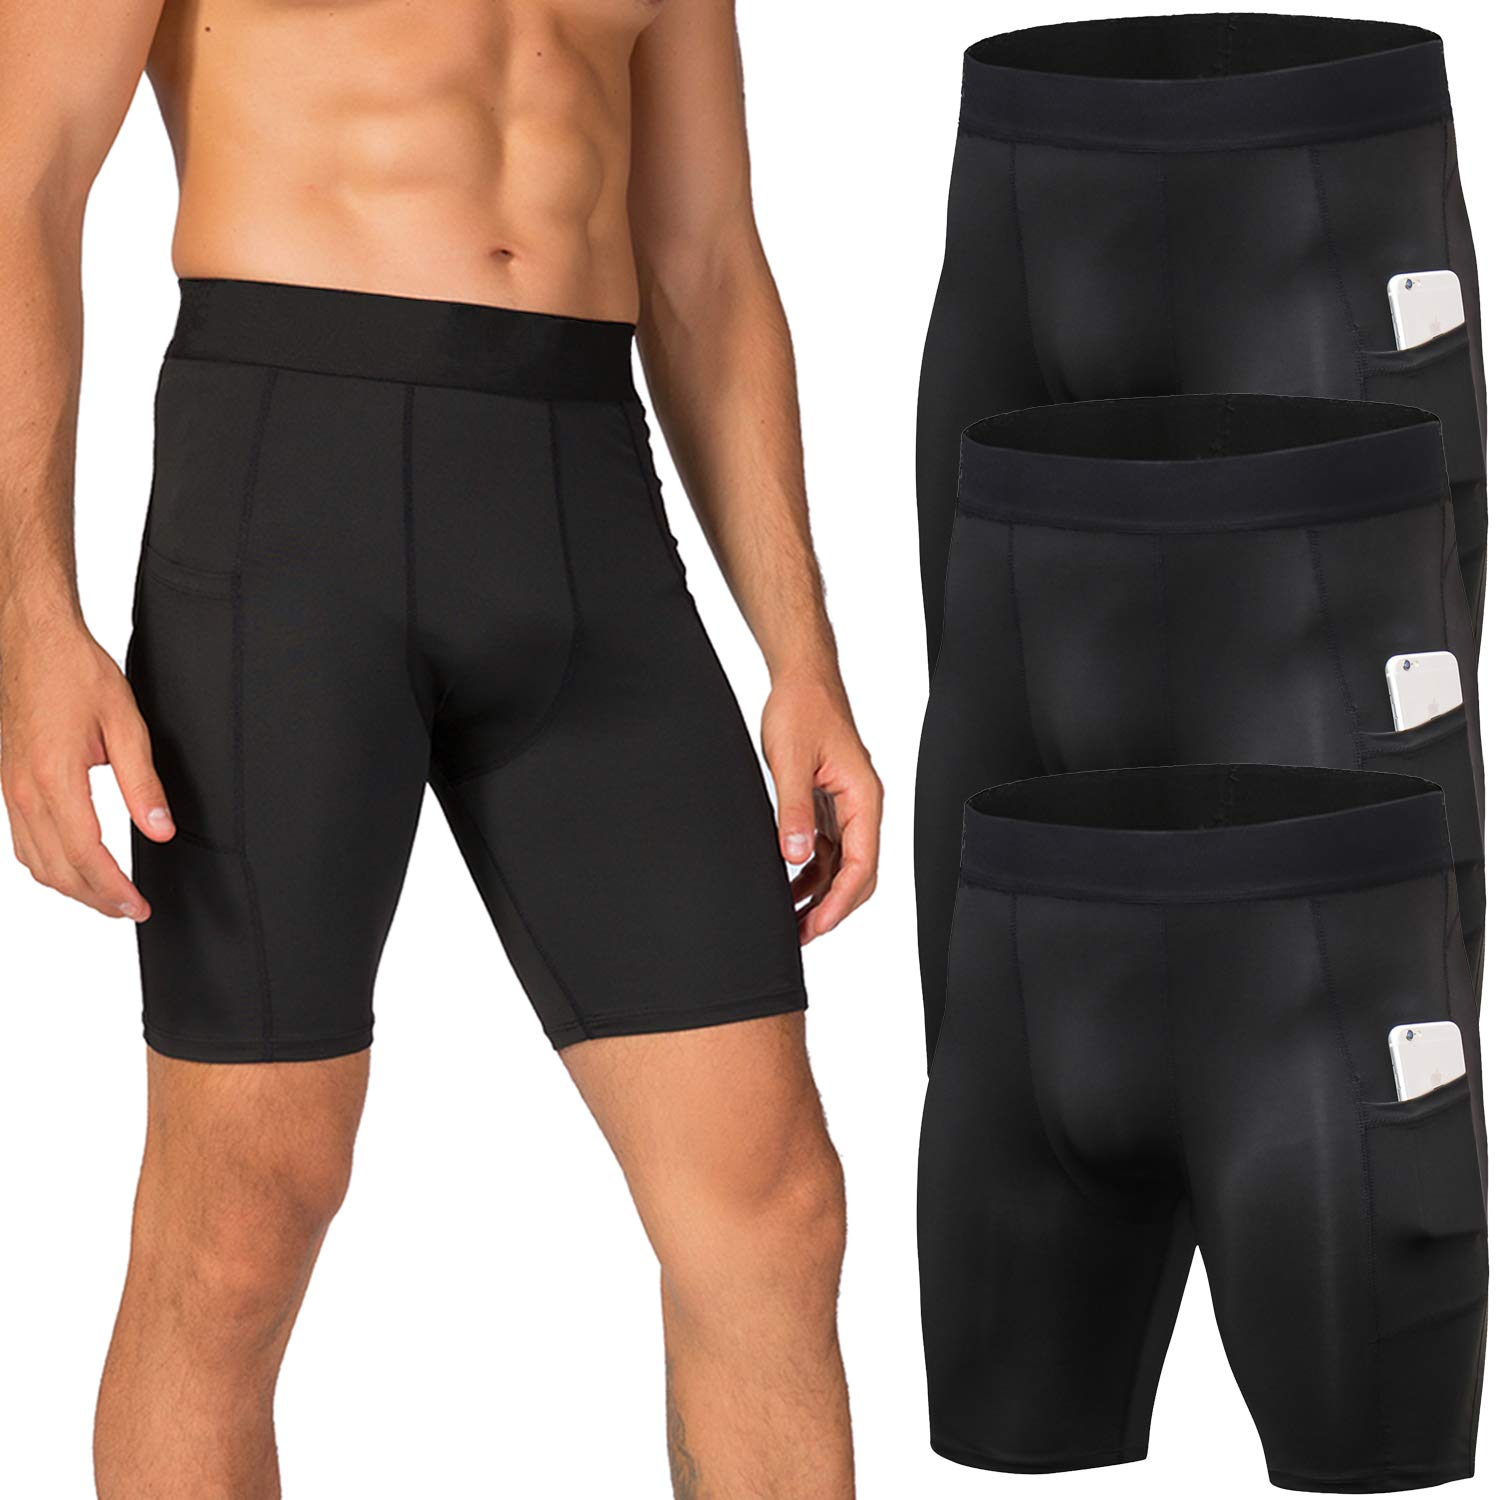 Lavento Men's Compression Shorts Sports Baselayer Cool Dry Tights (3 Pack-3815 Black,X-Large) by Lavento